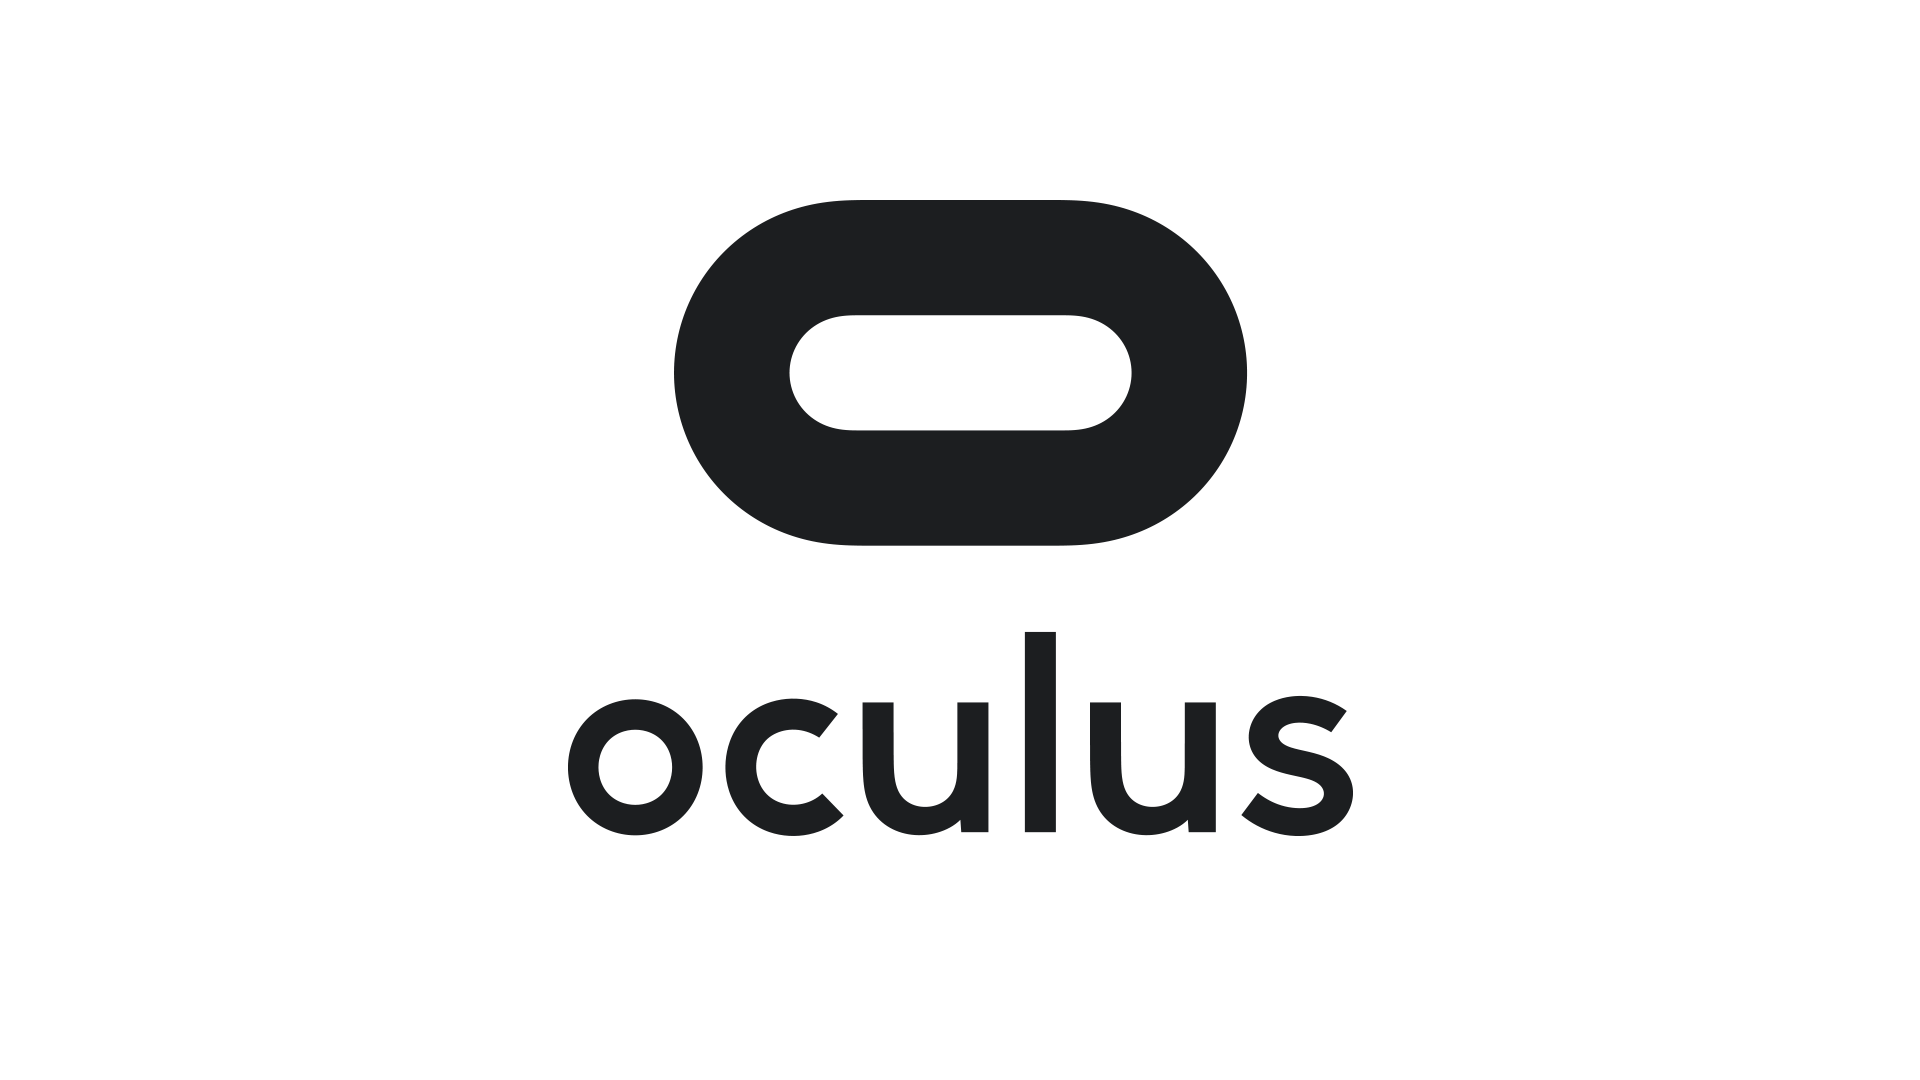 How to Fix Oculus System Update Activity Issue